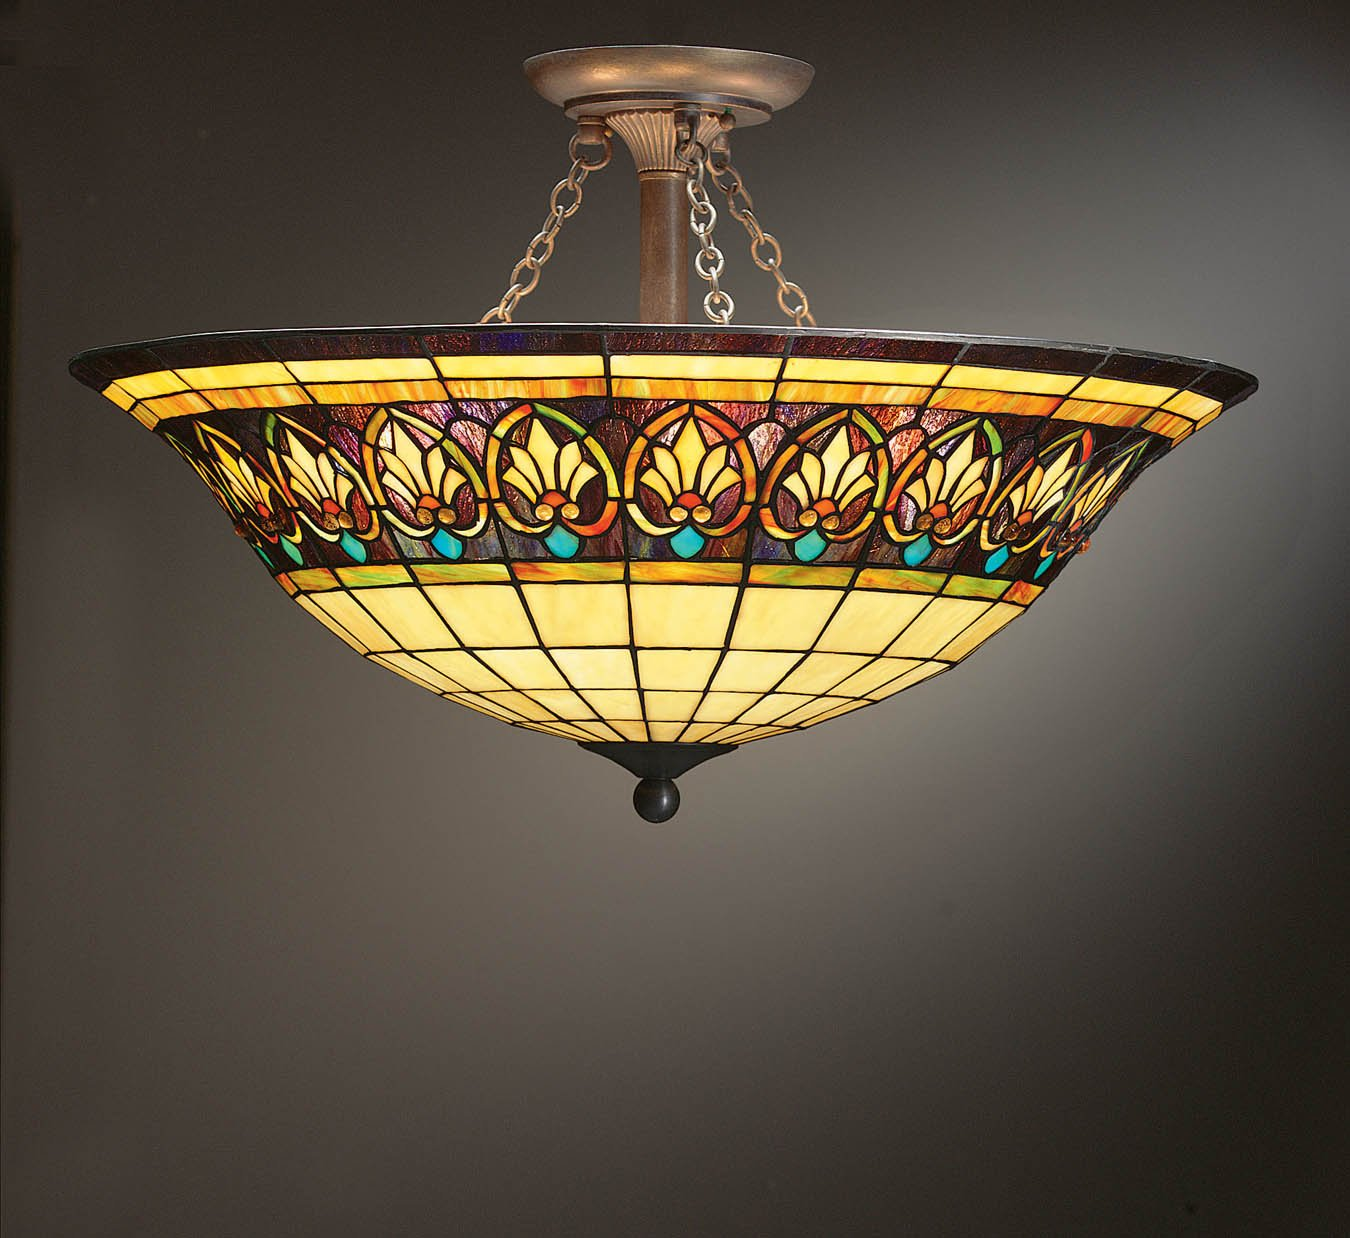 Tiffany Lighting Fixtures On Winlights Com Deluxe